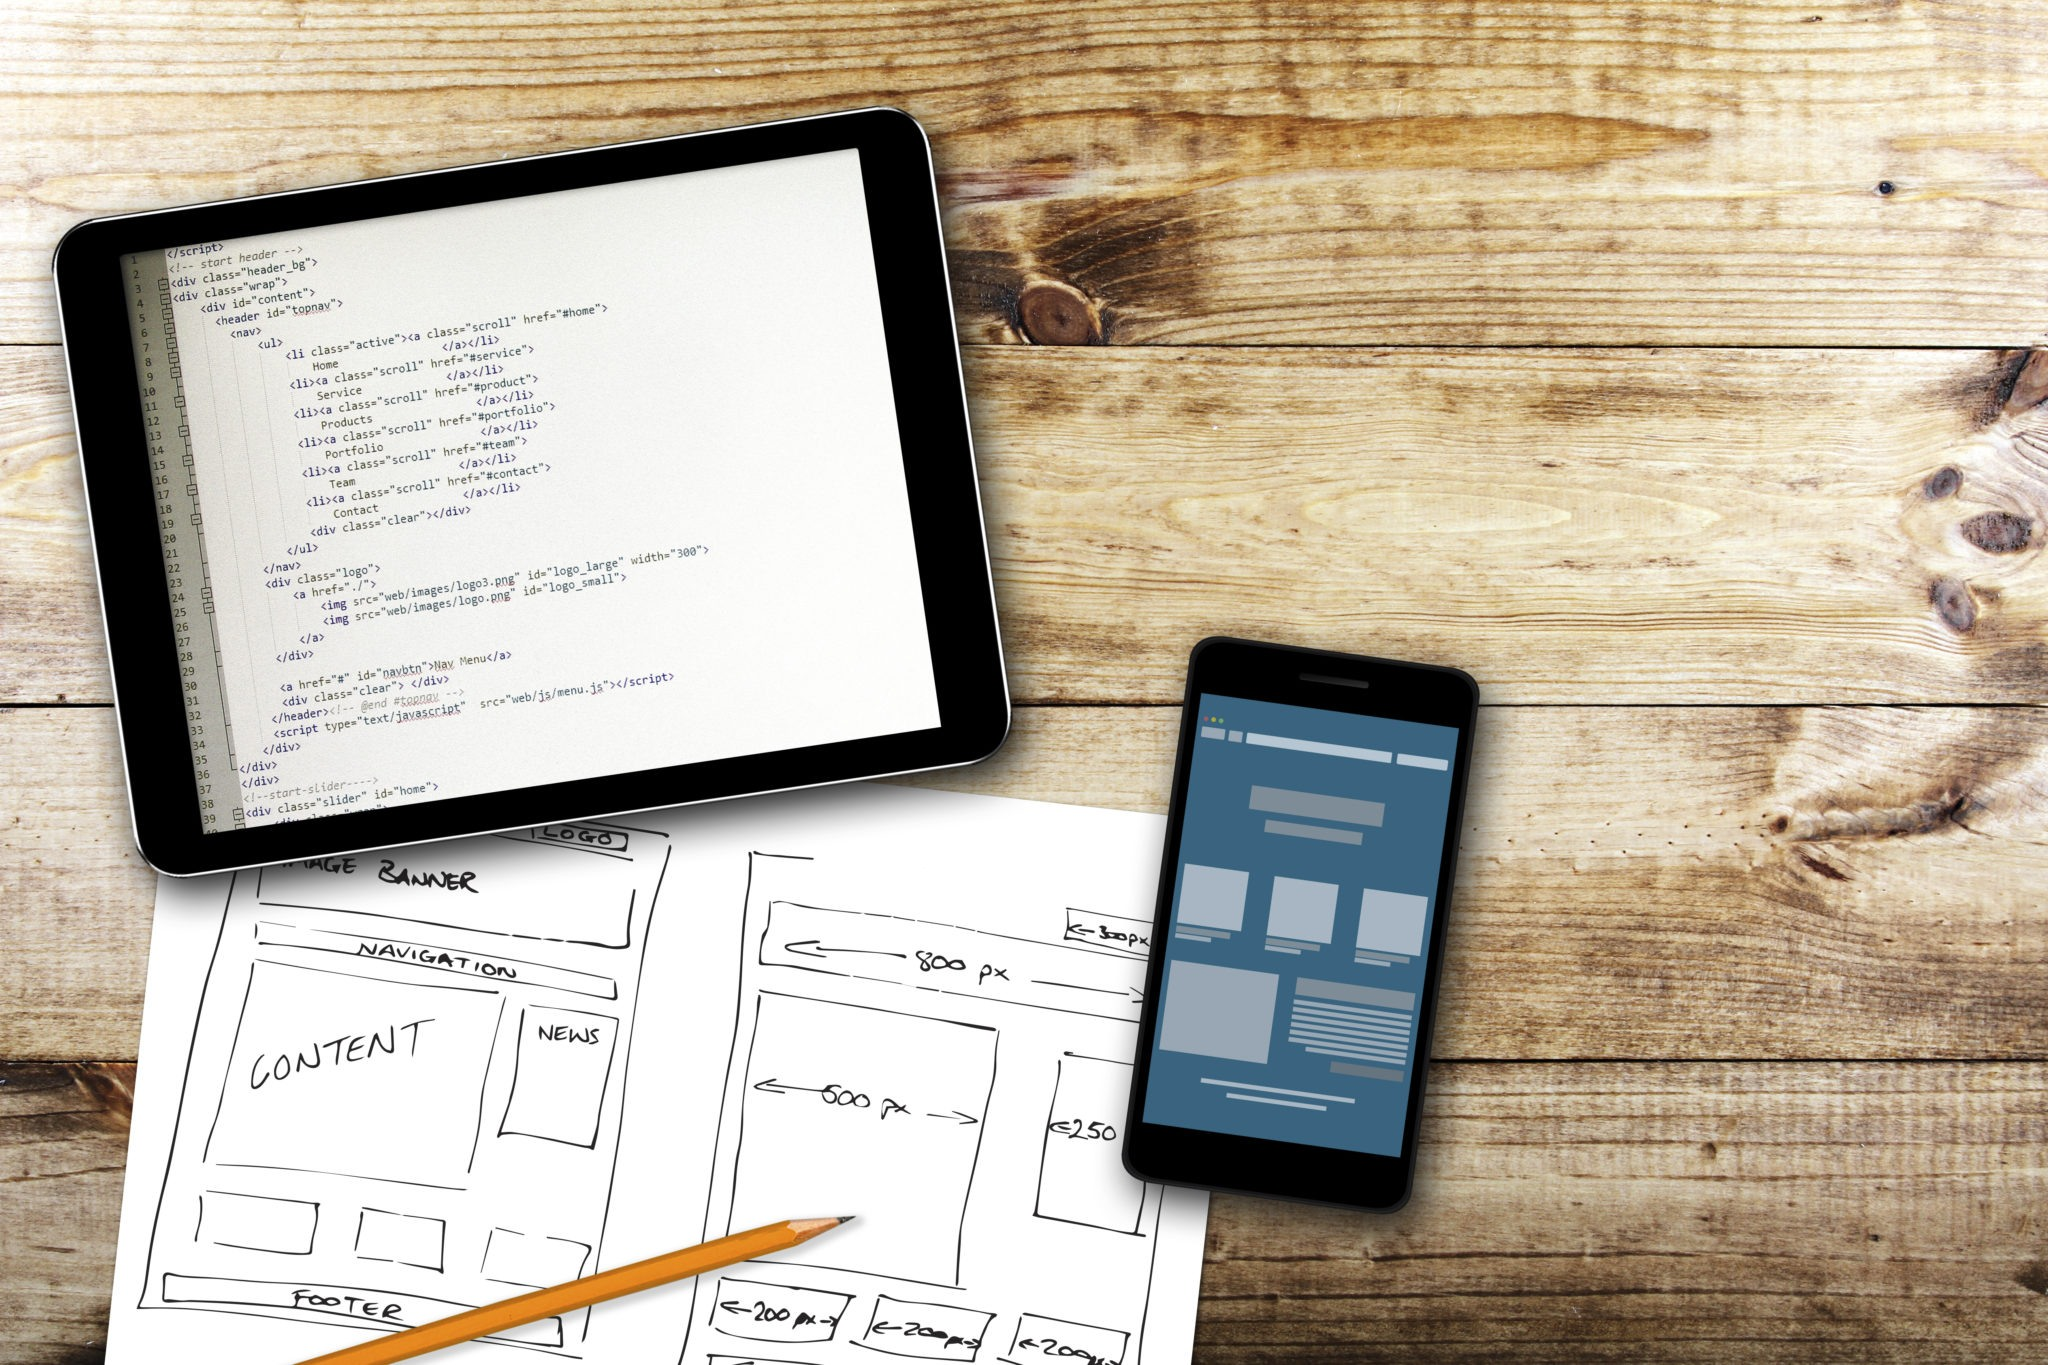 html coding on a tablet with website design sketches on paper